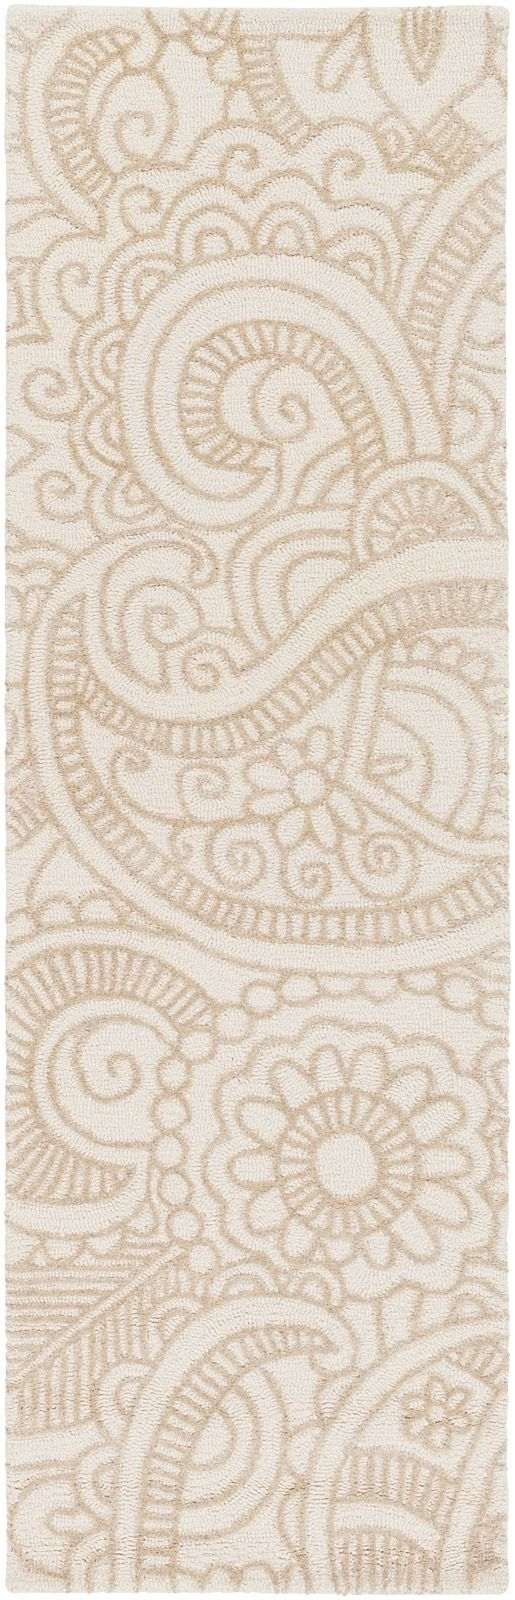 surya queensland country & floral area rug collection